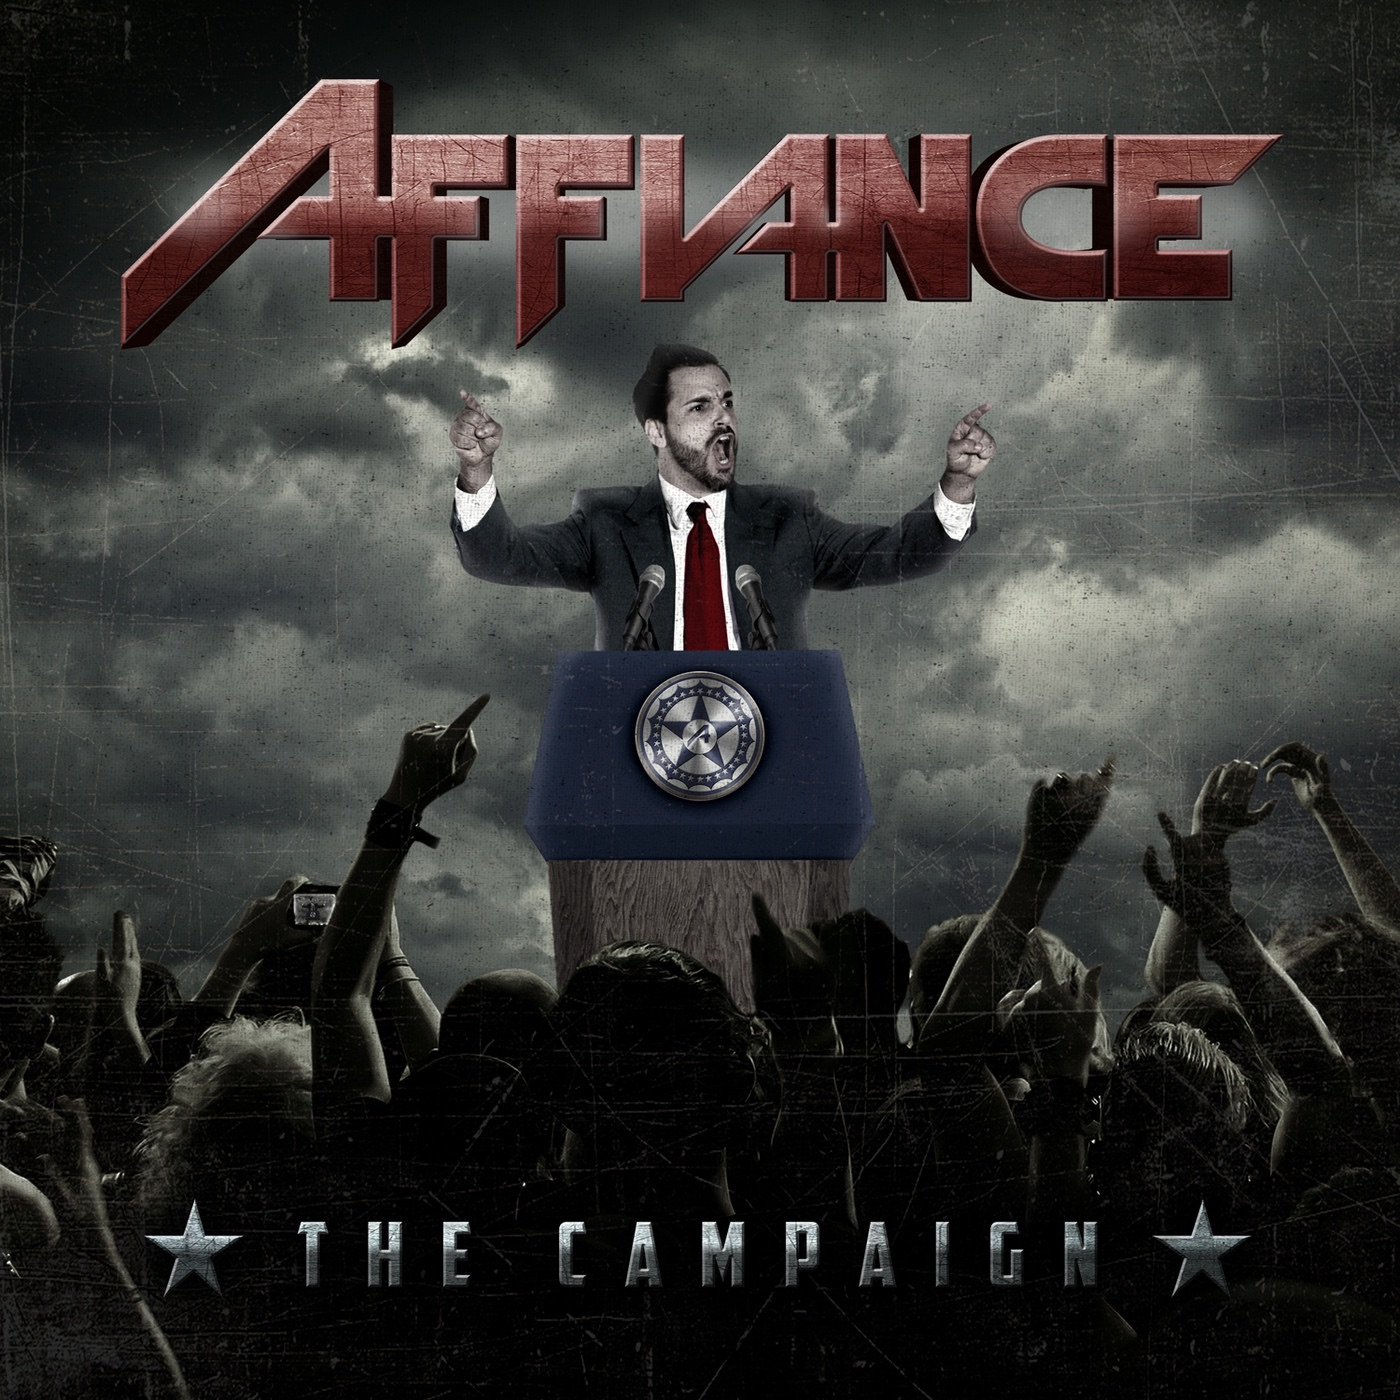 Affiance - The Campaign (2012)